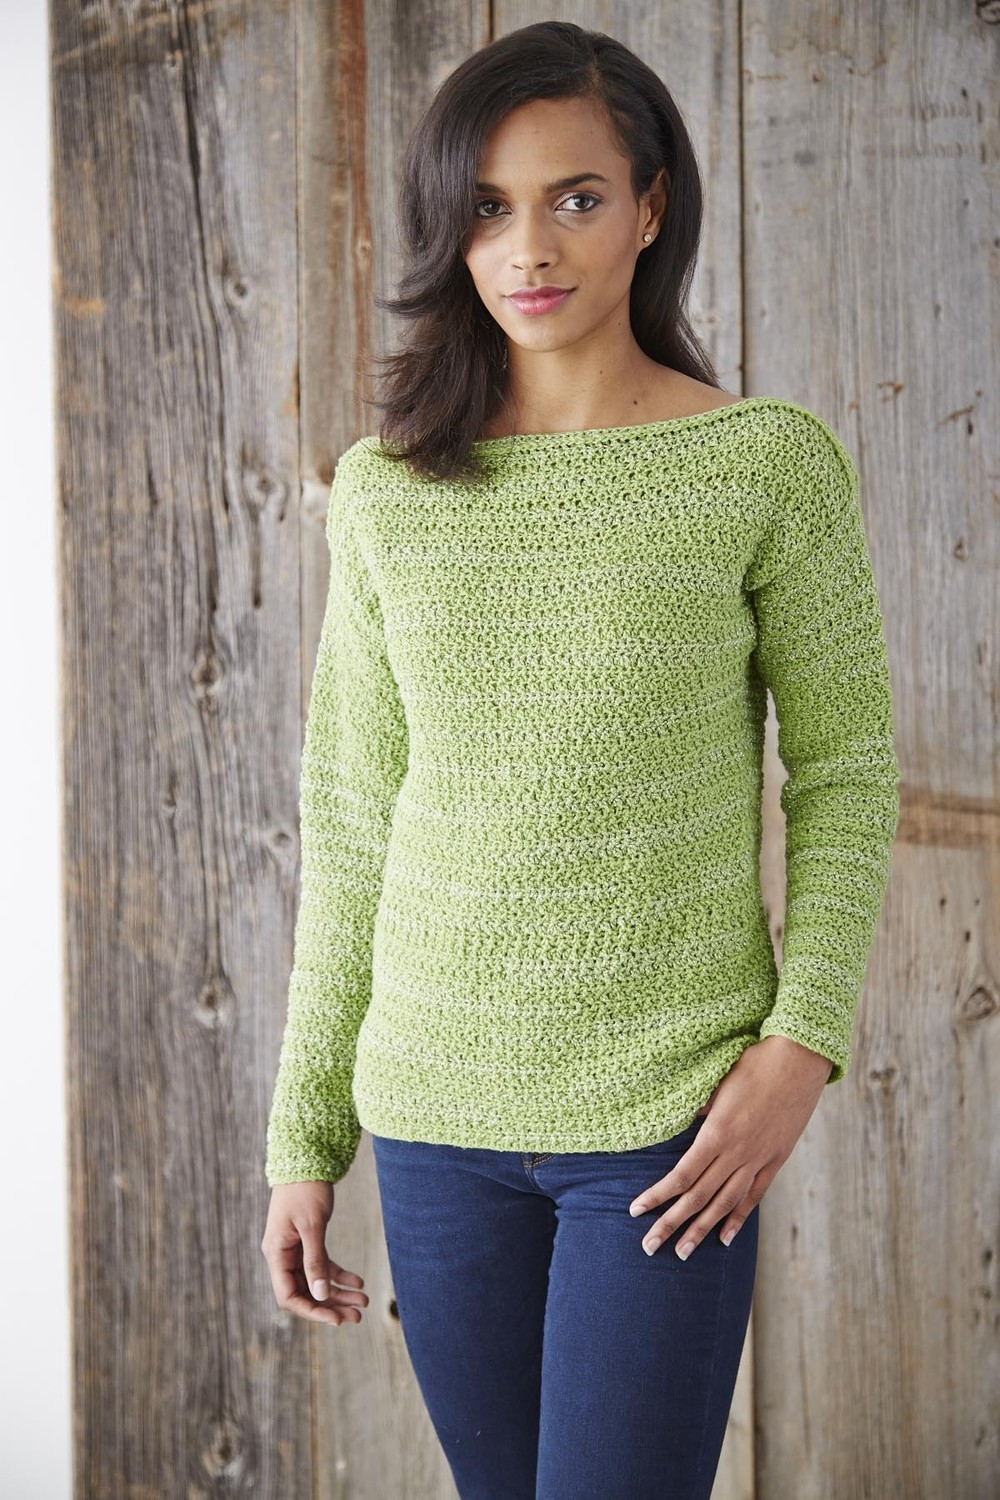 Luxury Boat Neck Pullover Sweater Crochet Cardigans Of Gorgeous 40 Pics Crochet Cardigans